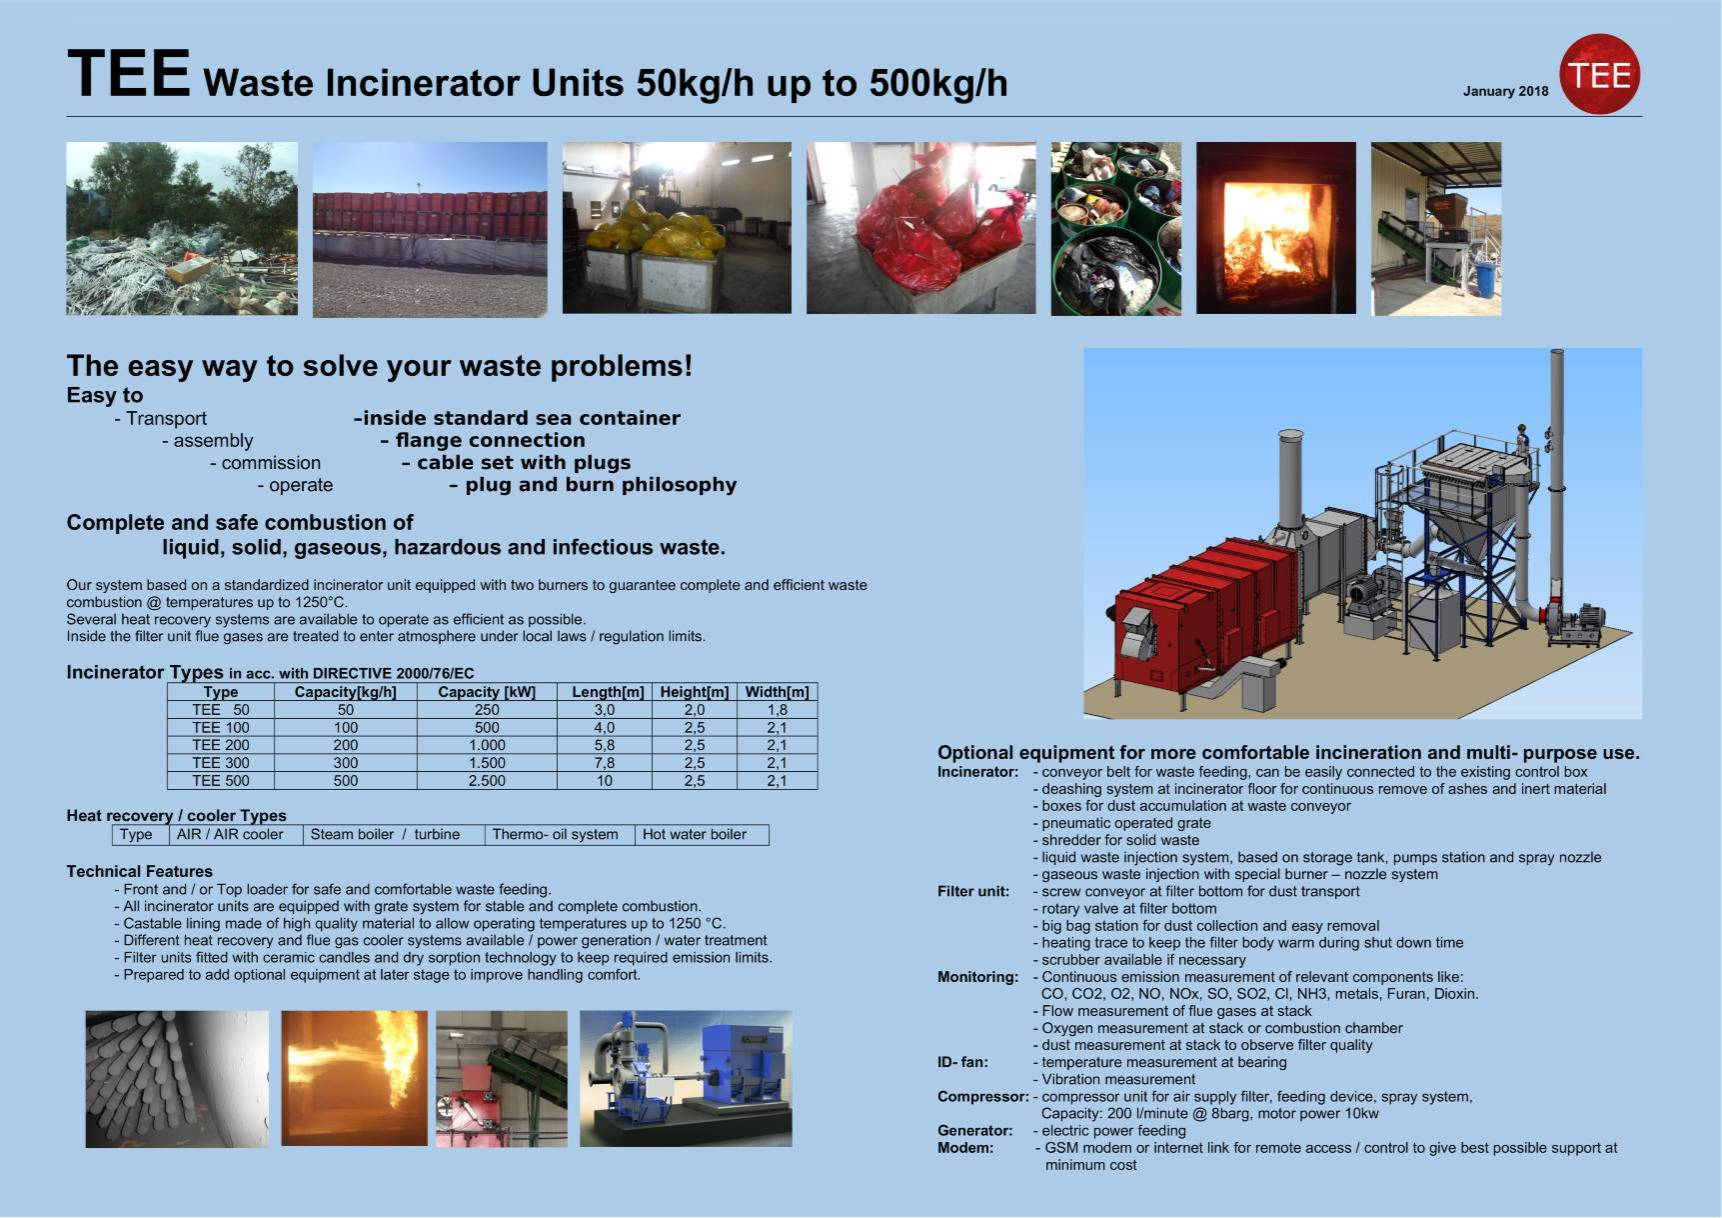 Waste incineration units with system